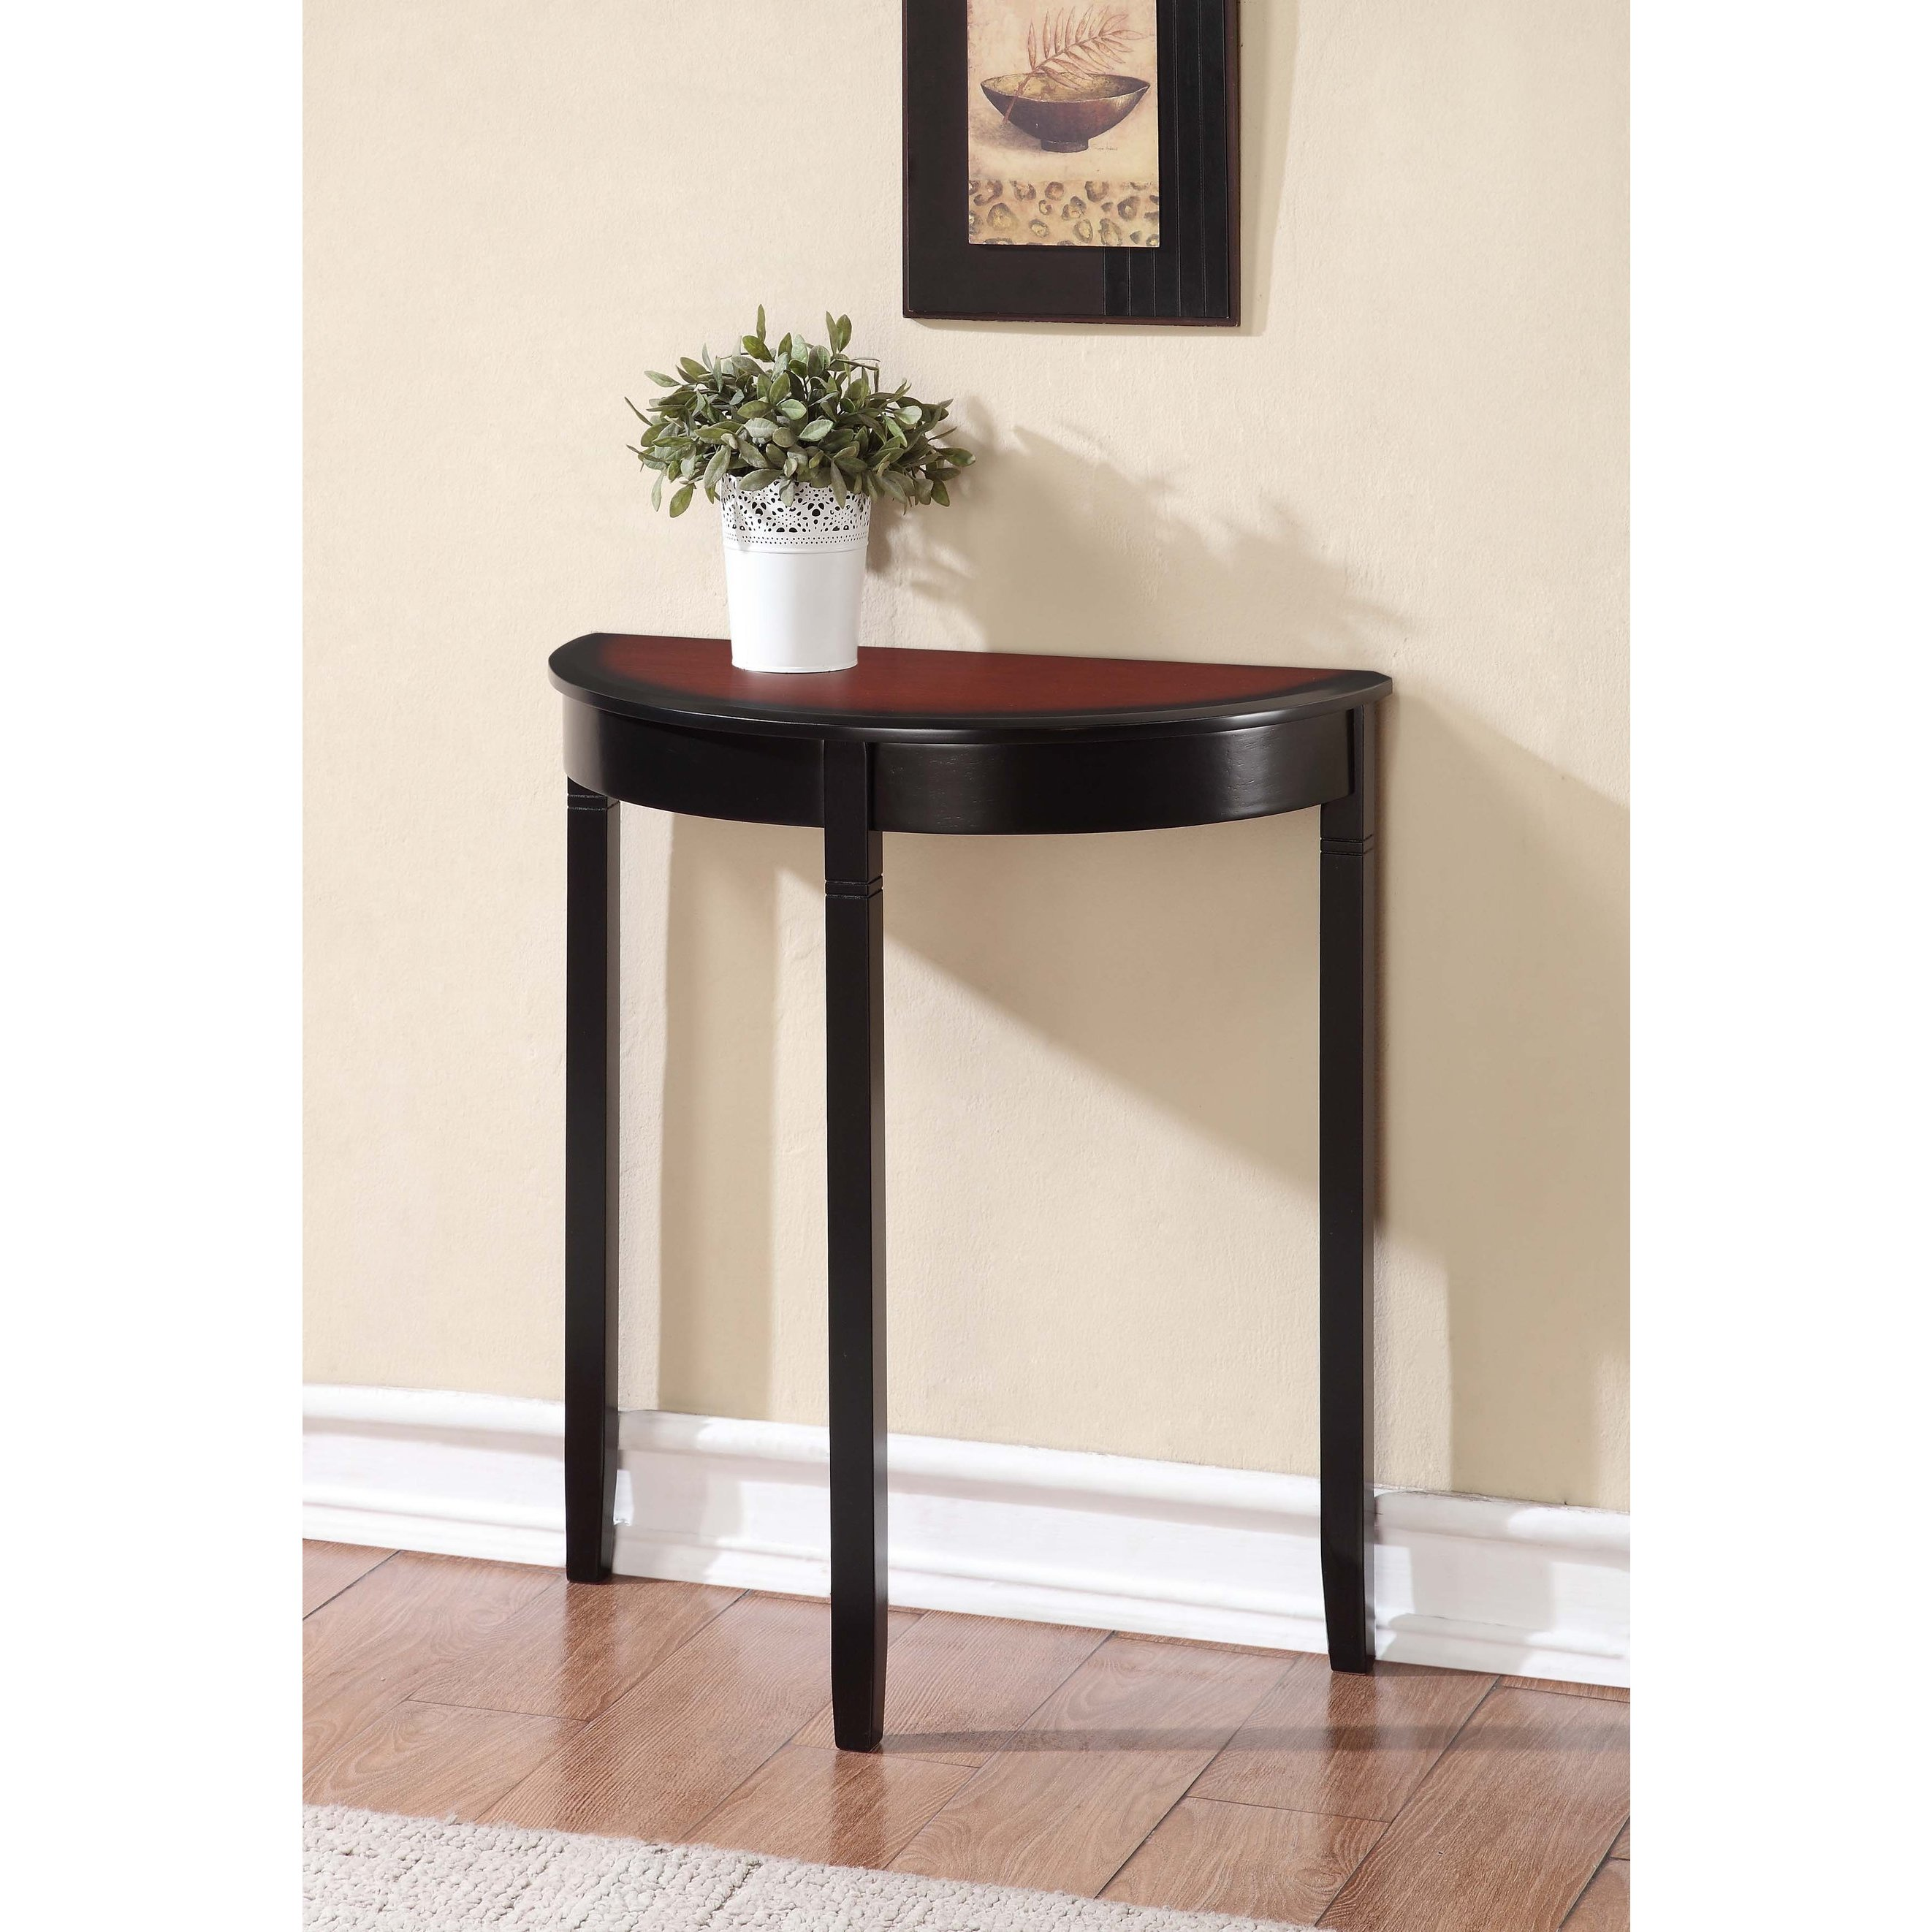 fabulous hallway accent table with monarch specialties hall brilliant black console devon lacquered half moon porch furniture clearance what bistro small pub and chairs brushed